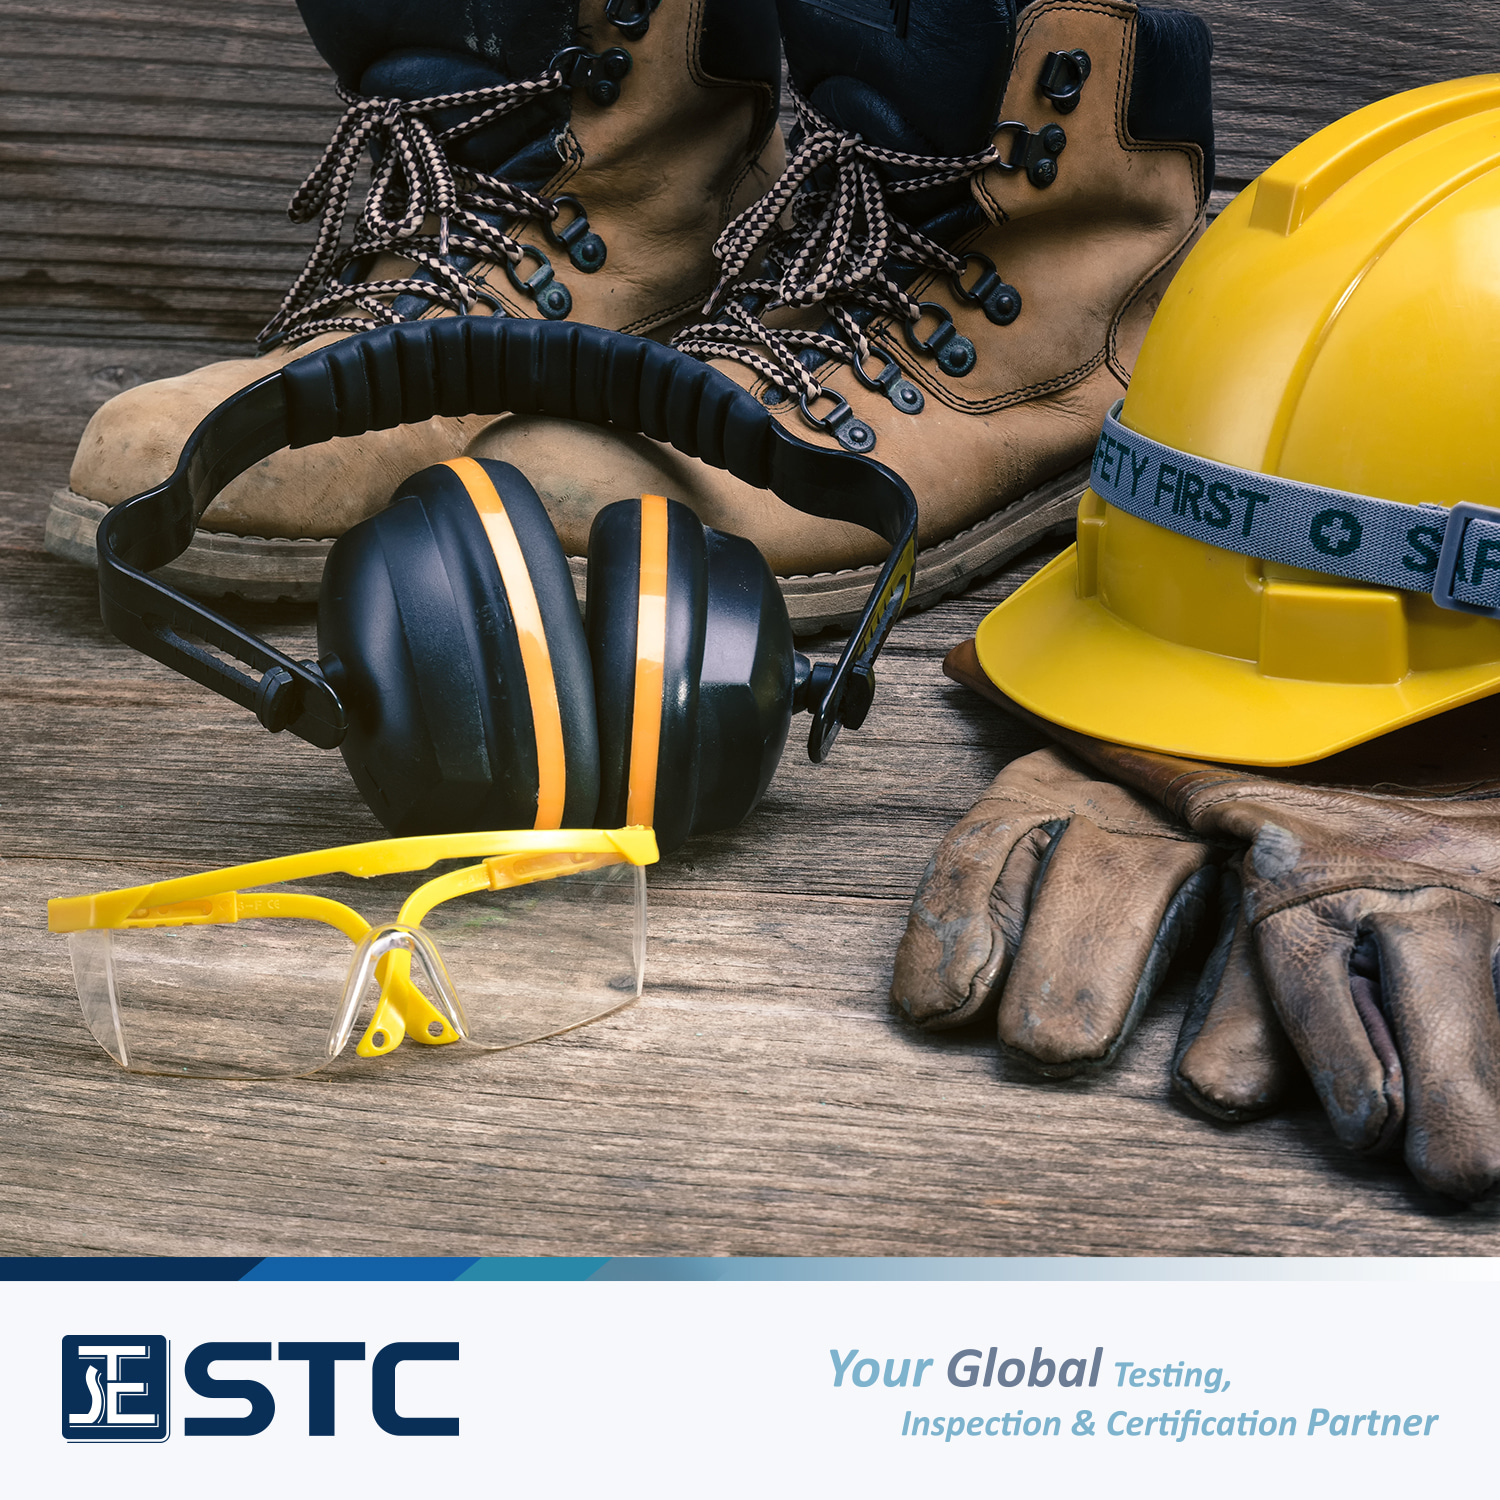 Personal Protective Equipment (PPE) Testing